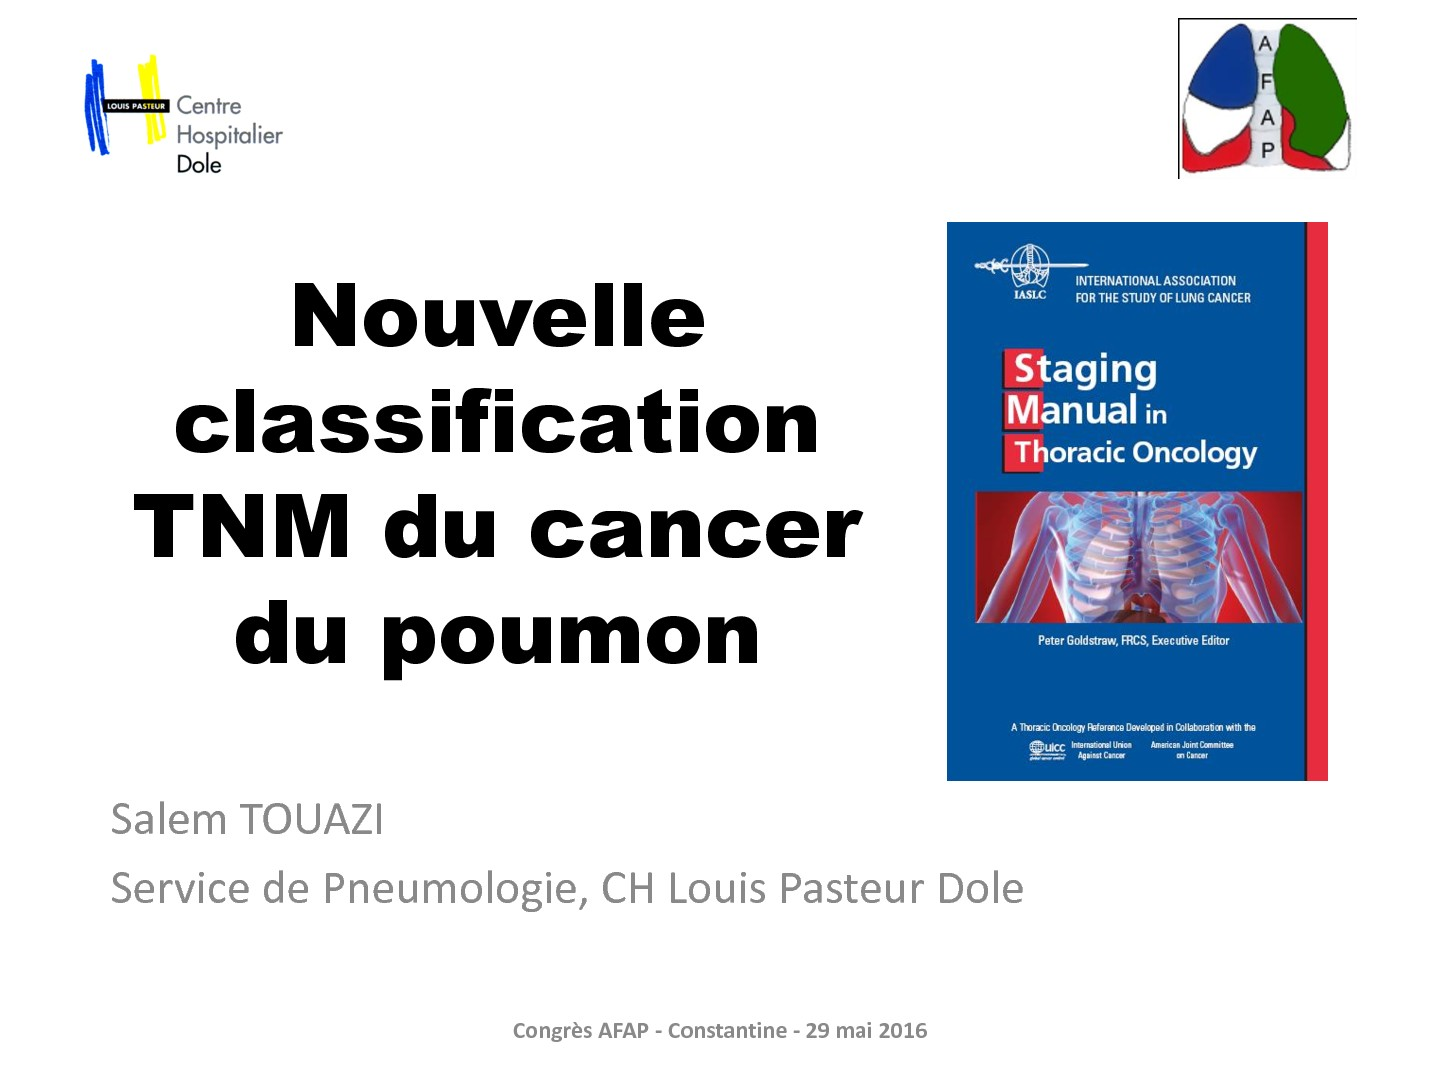 Nouvelle classification TNM du cancer du poumon. Salem TOUAZI